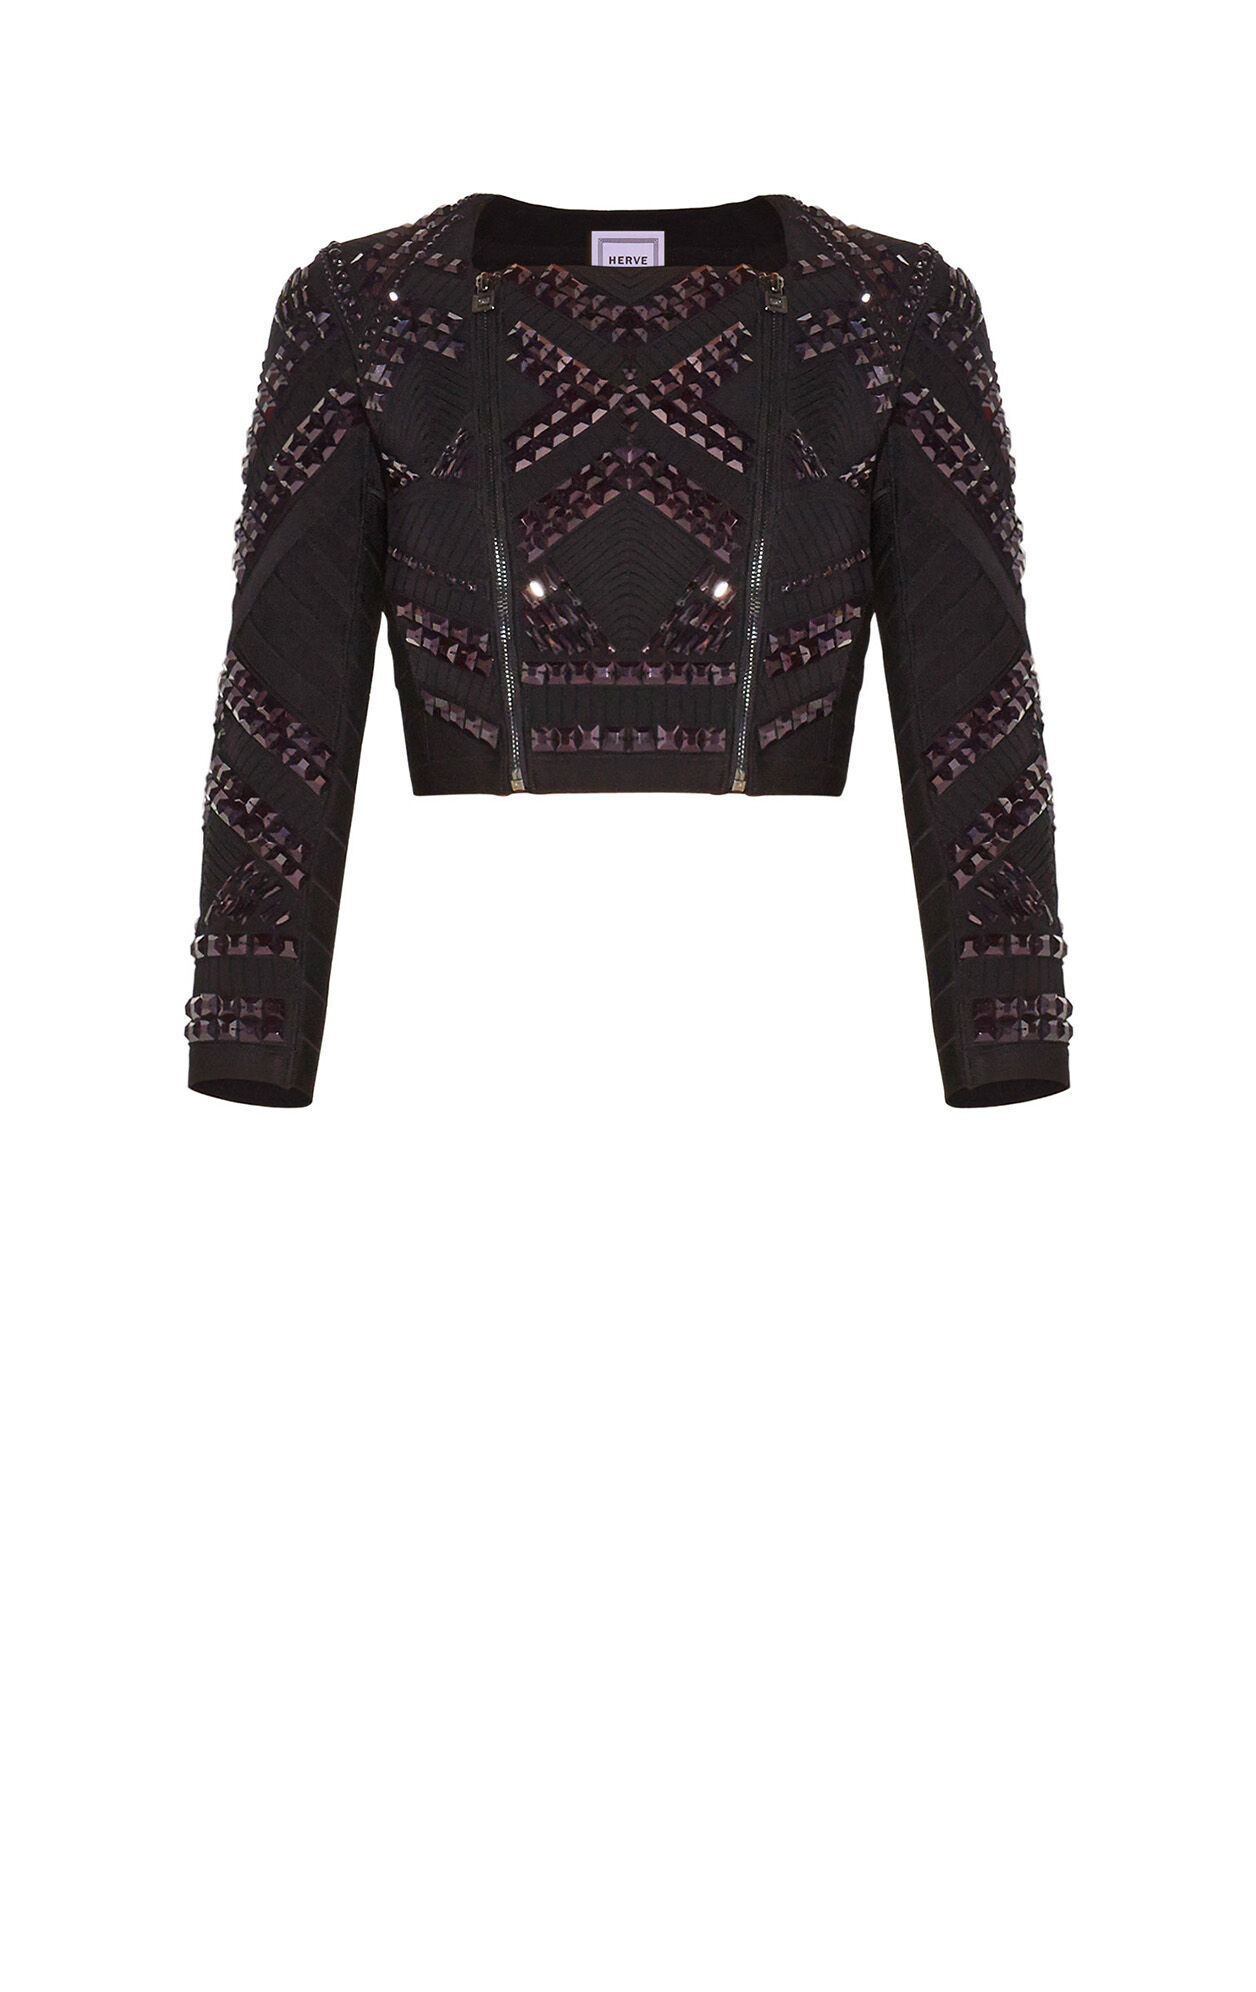 Lanna Scallop Detail Beaded Jacket